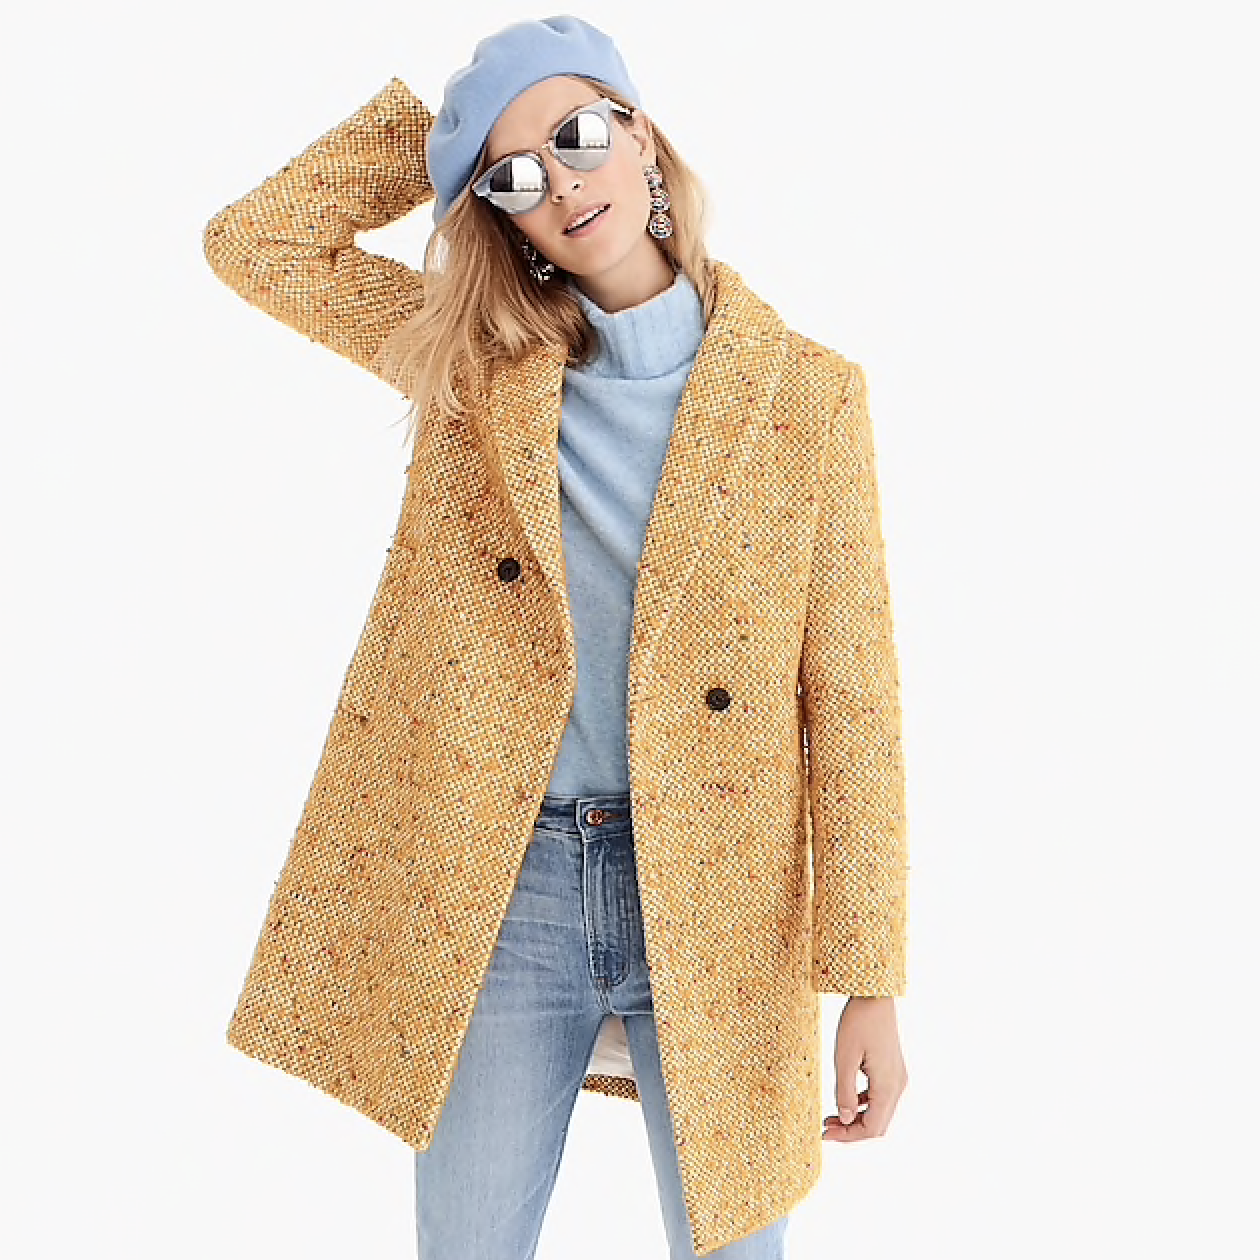 J.Crew 40% Off Sale - Use code TOGETHER to get 40% off your purchase online and in-store this Black Friday (and I'm sure through Cyber Monday). I looovvvee this tweed coat so much and with the sale is down to $195 instead of $325. Another favorite are these High Block Mules and stunning Long Sleeve Peplum Top.